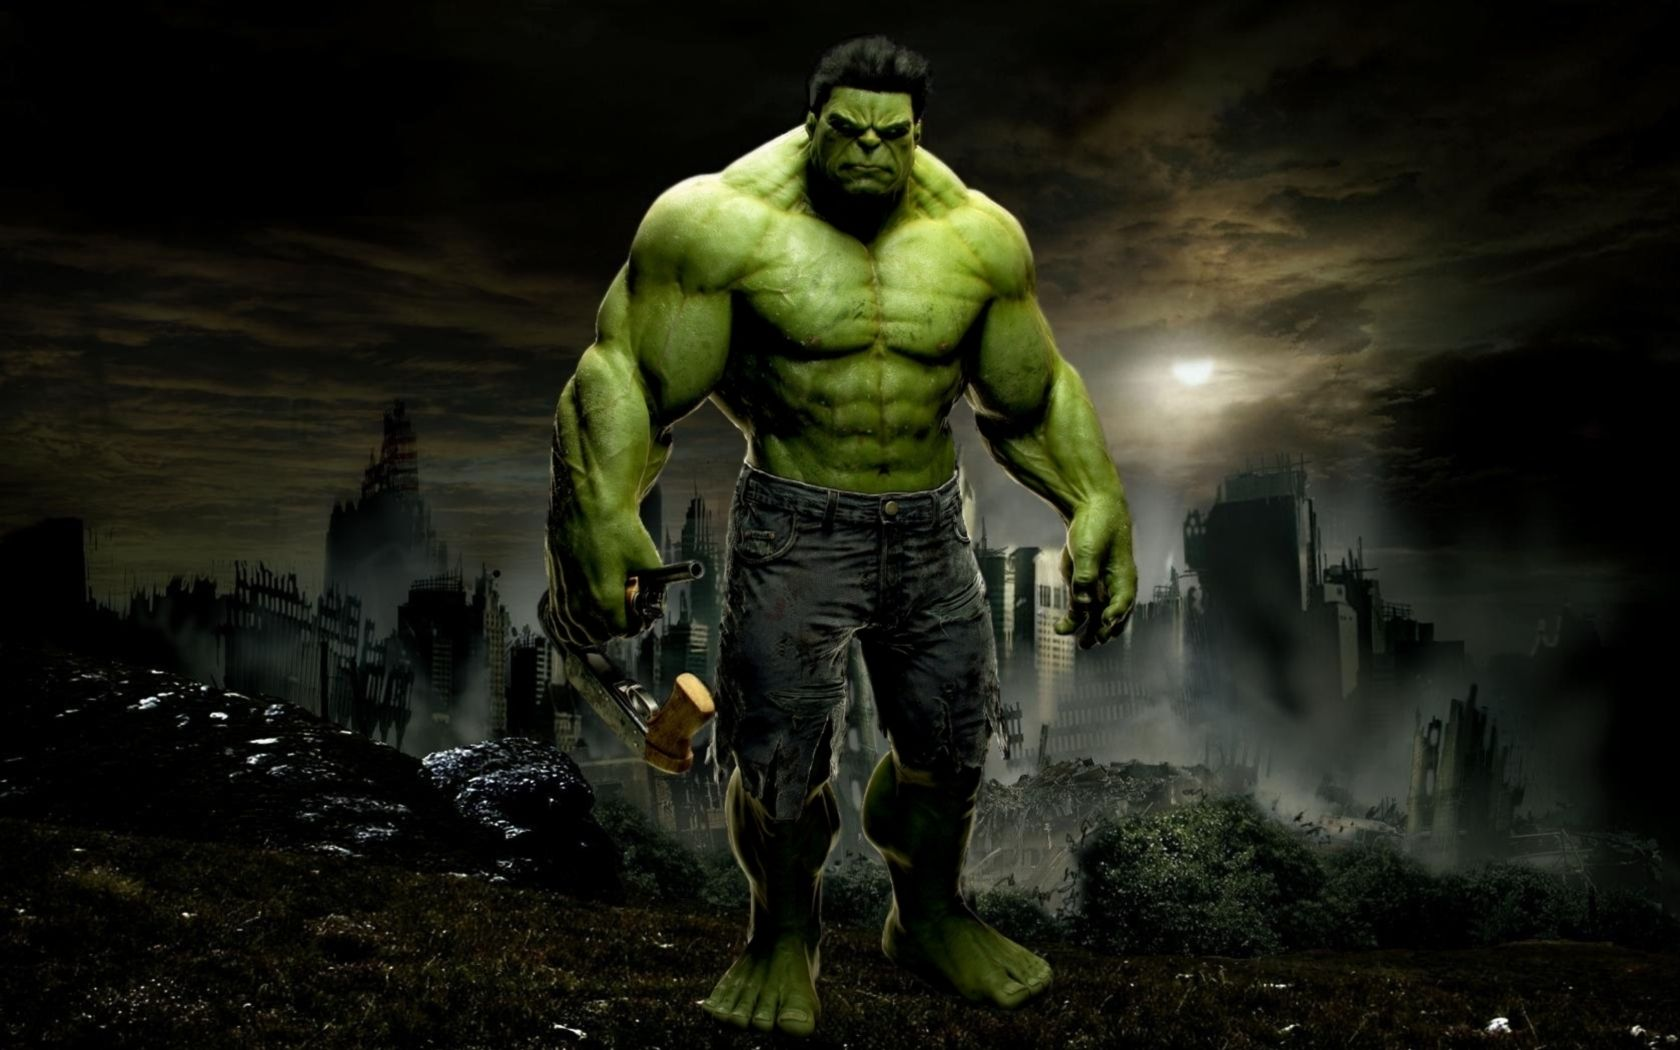 3D Hulk Hd Background Wallpaper 18 HD Wallpapers Graphic